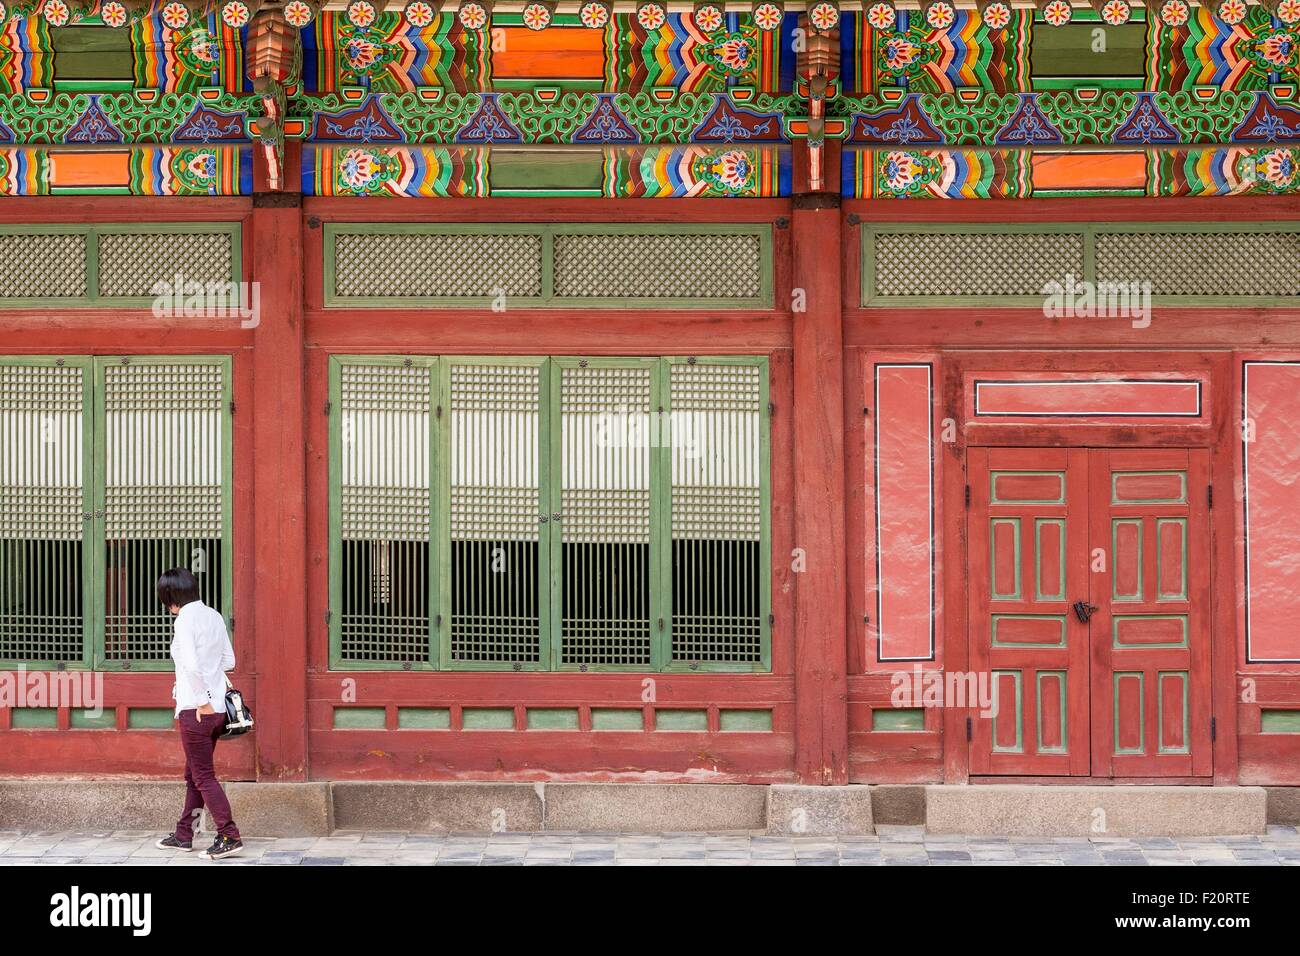 South Korea, Seoul, Deoksugung Palace, the royal palace of the Joseon Dynasty, pavilion - Stock Image